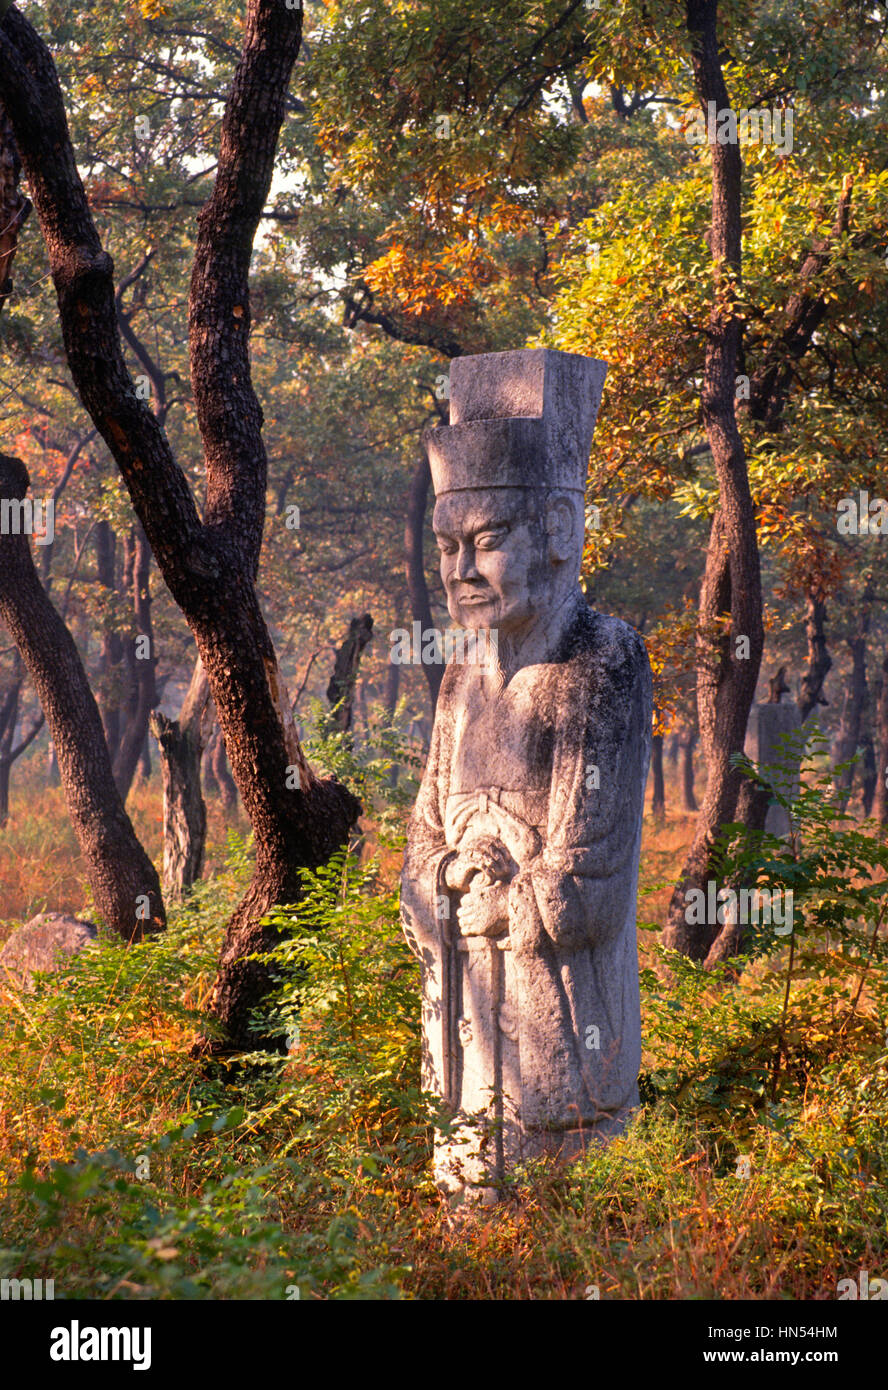 Statue of Confucian official in the Kong Woods, Confucian cemetery, in Qufu, Shandong, China. - Stock Image